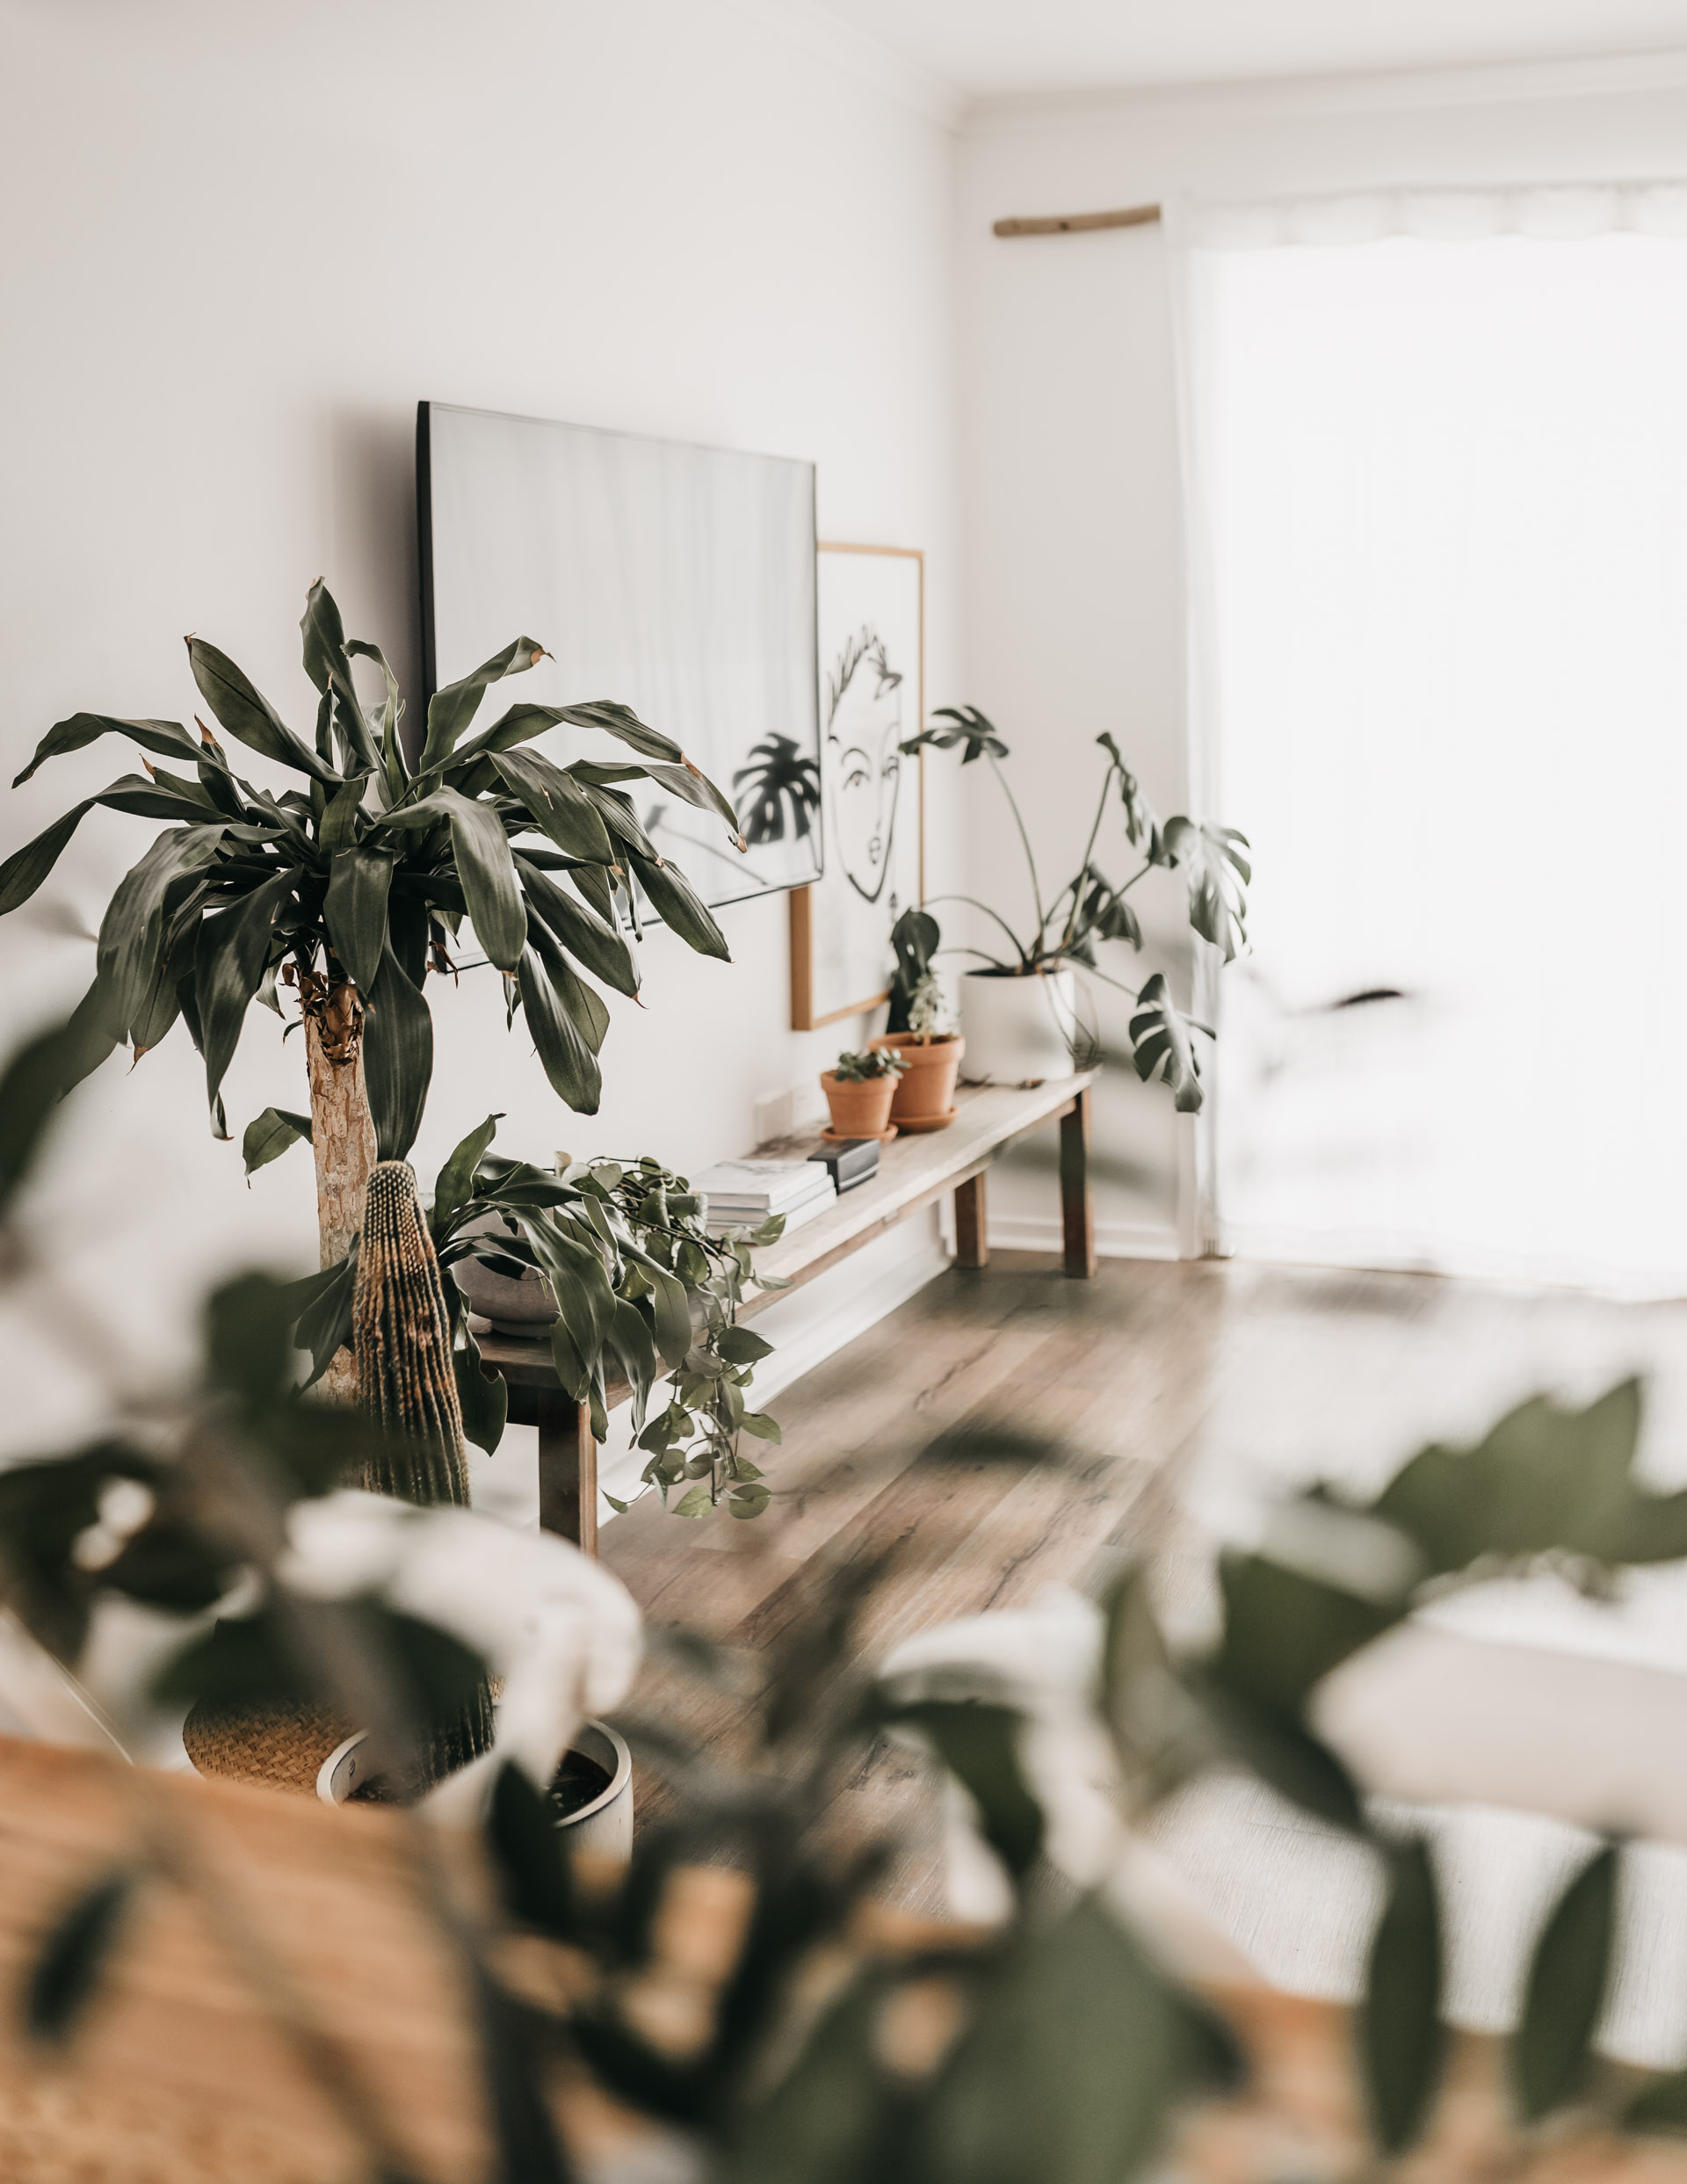 keira-mason-caba-cottage-plants-in-home.jpg